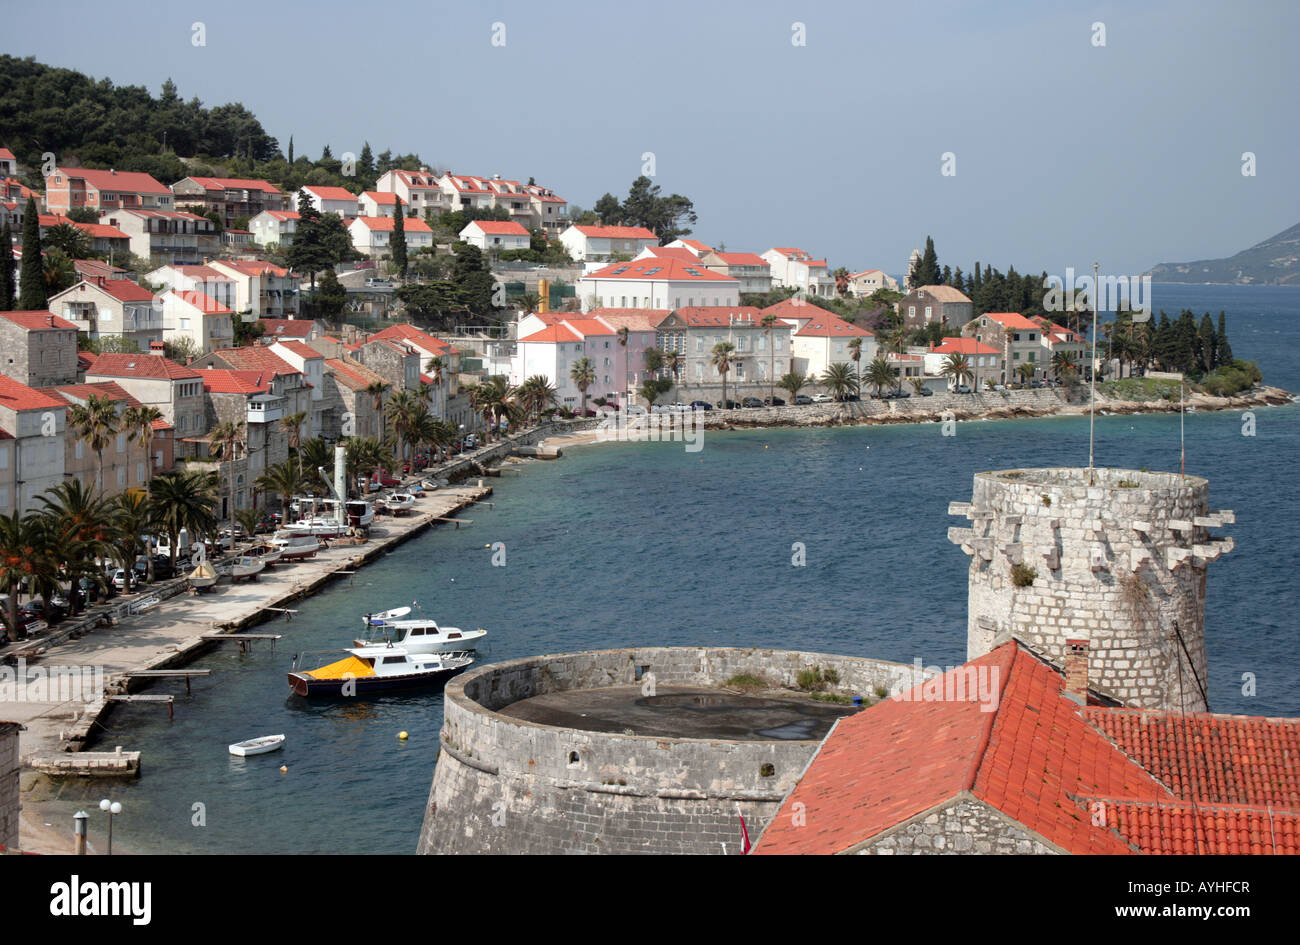 Island of Korcula Croatia - Stock Image